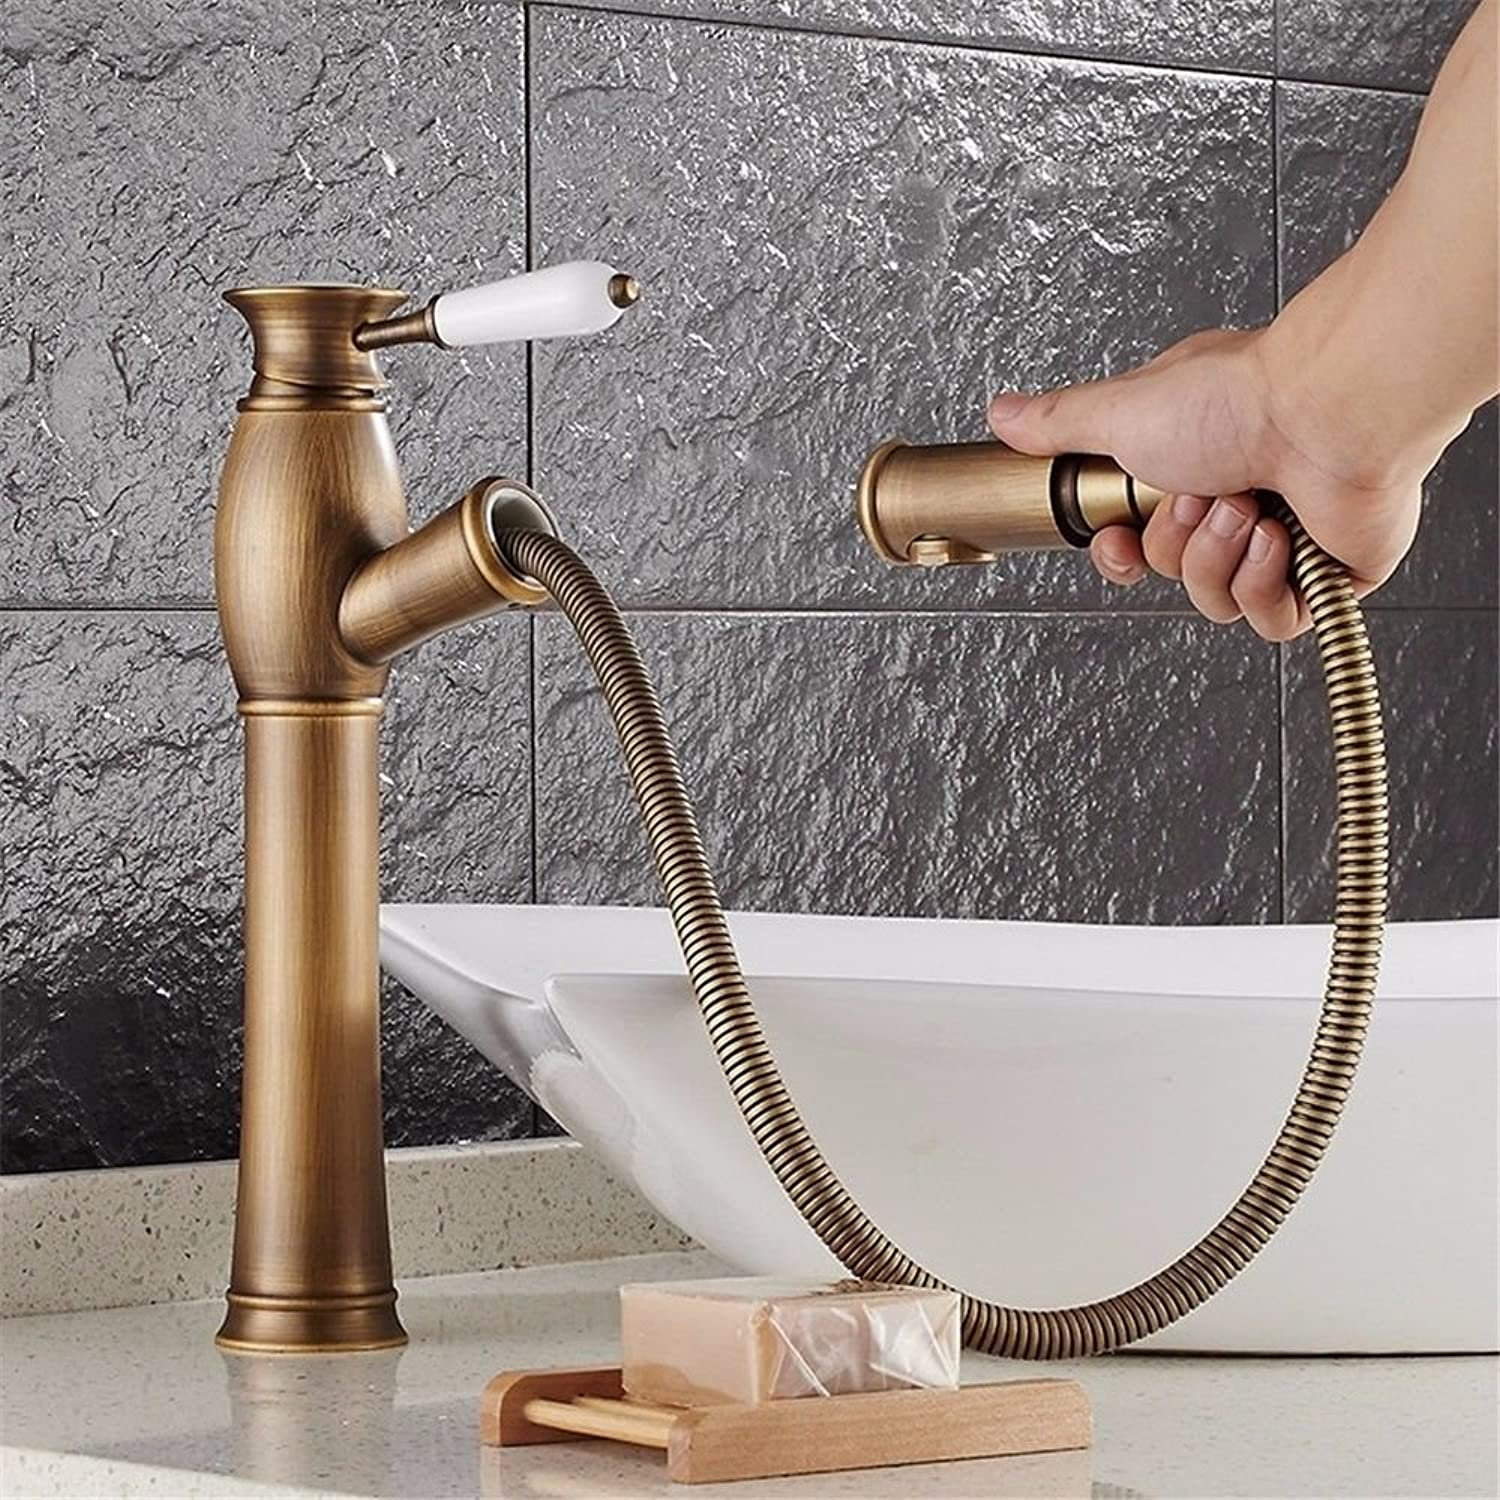 SADASD European High-End Copper Bathroom Basin Faucet Pull Telescopic Faucet redating Antique Brushed Wash Basin Sink Taps Single Hole Single Handle Ceramic Valve Hot And Cold Water Mixer Tap With G1 2 Hose